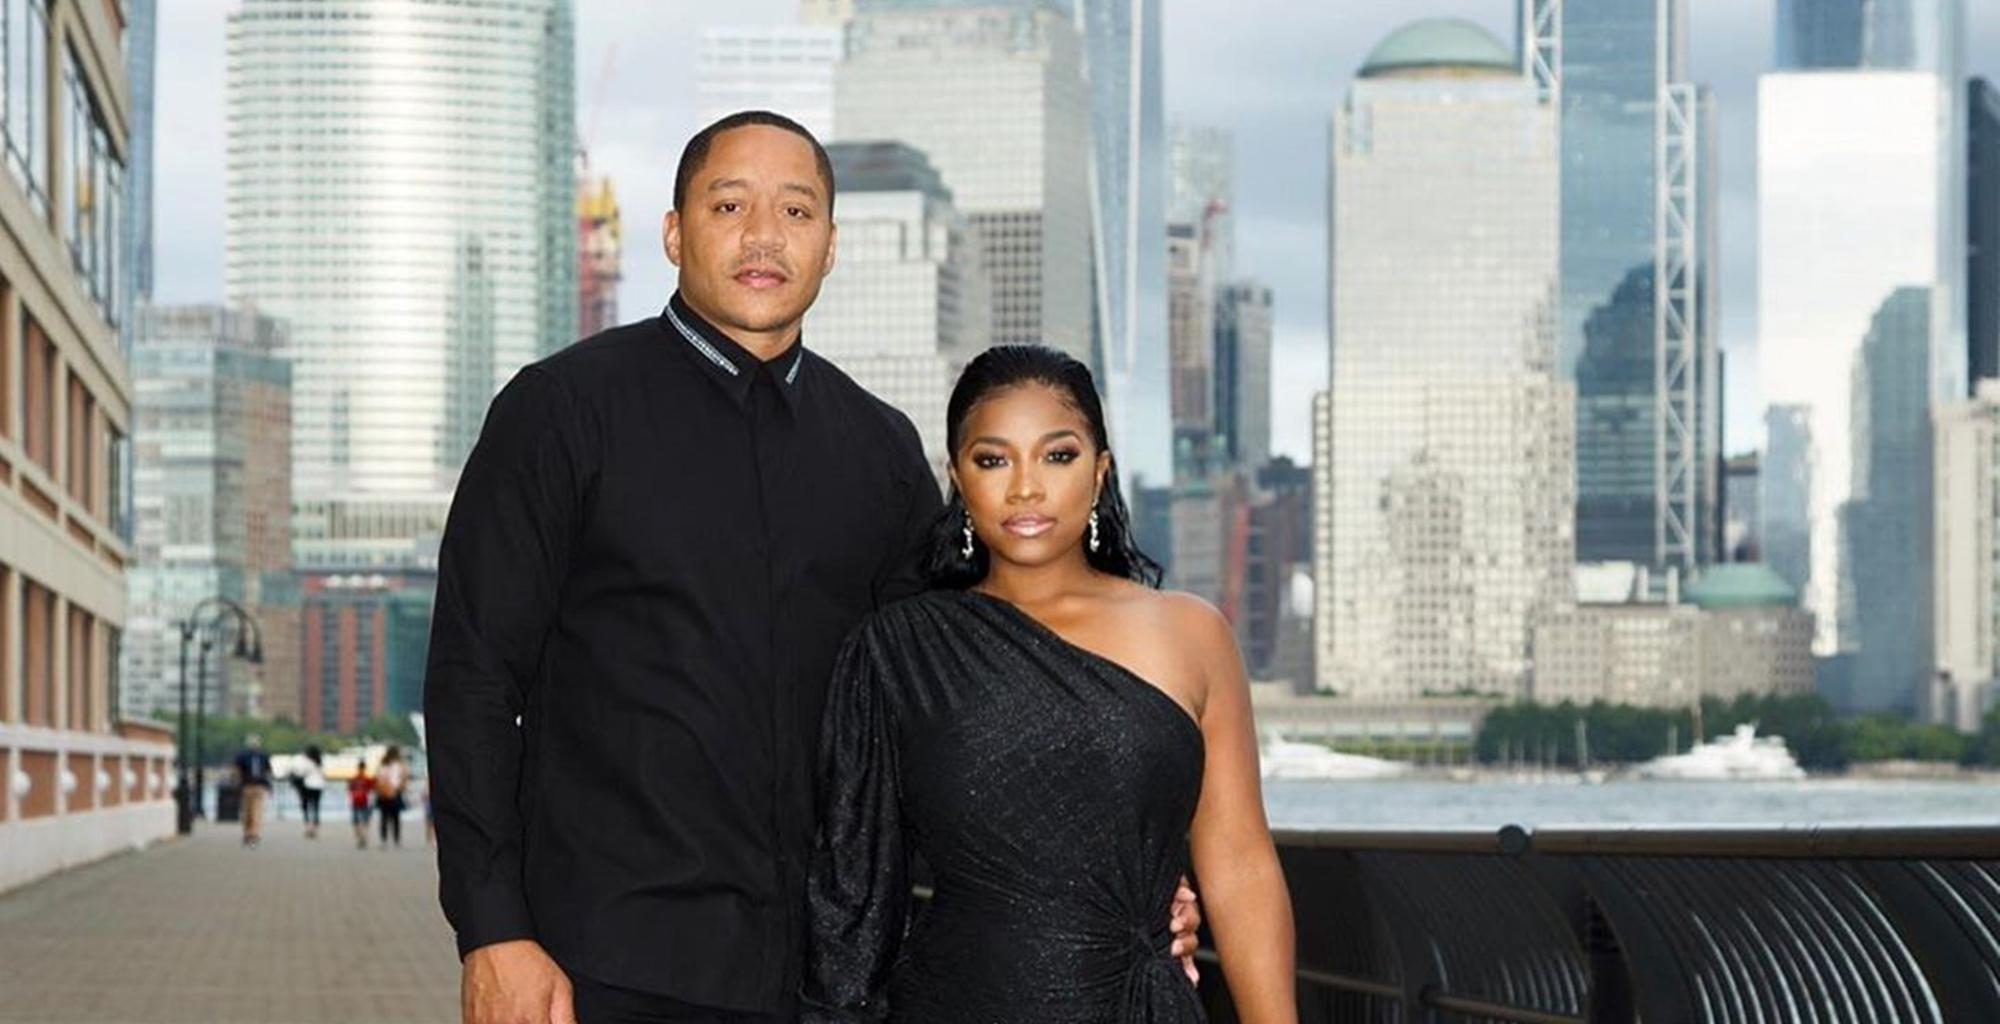 Toya Wright And Robert Robert Have Fans Asking, Are These Engagement Photos Or What?